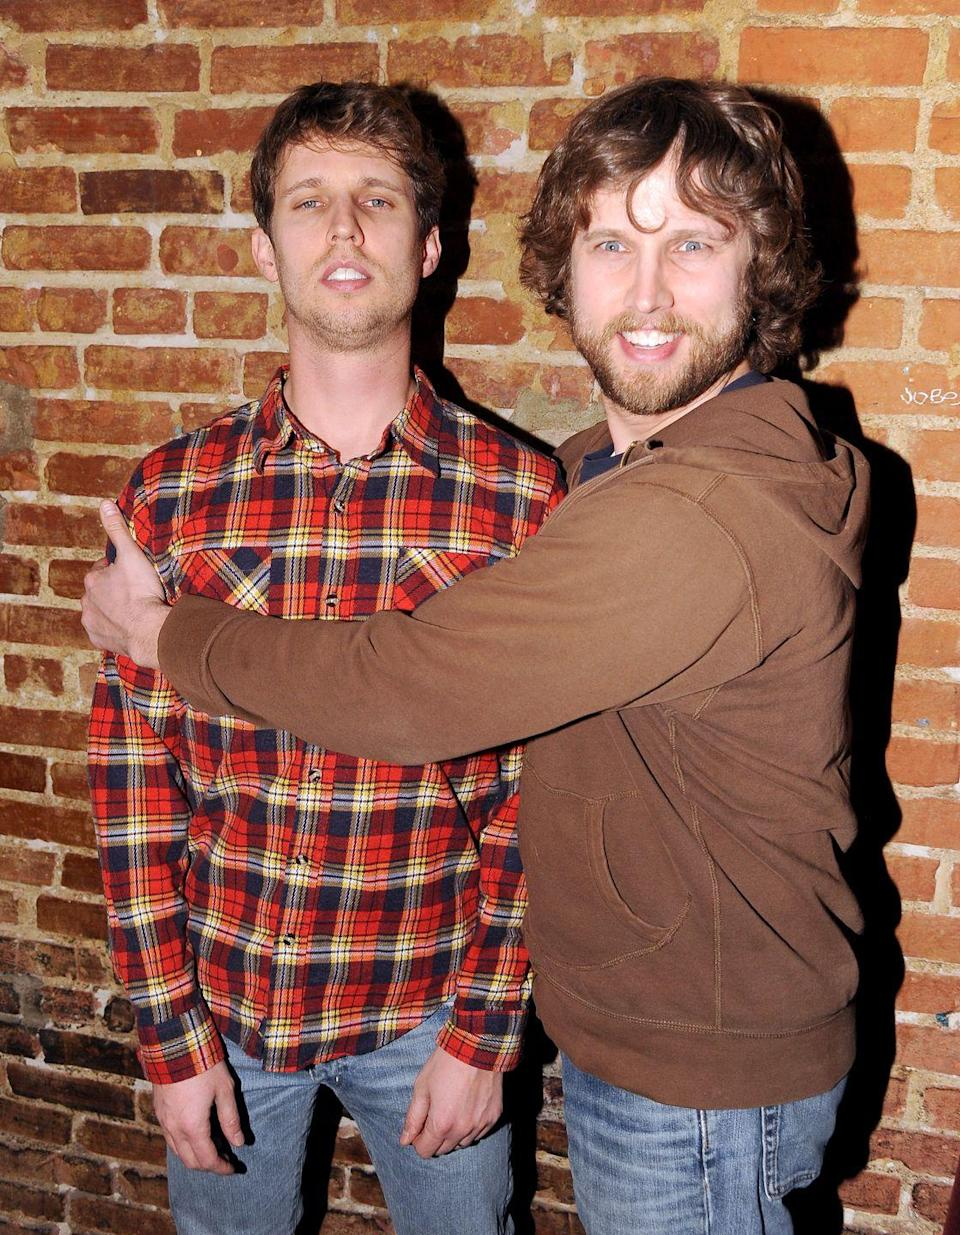 <p>You may know Jon Heder from his breakout role as the title character in <em>Napoleon Dynamite</em>, but you probably didn't know that his twin brother Dan also works in entertainment—both as an actor and as a visual effects artist.</p>